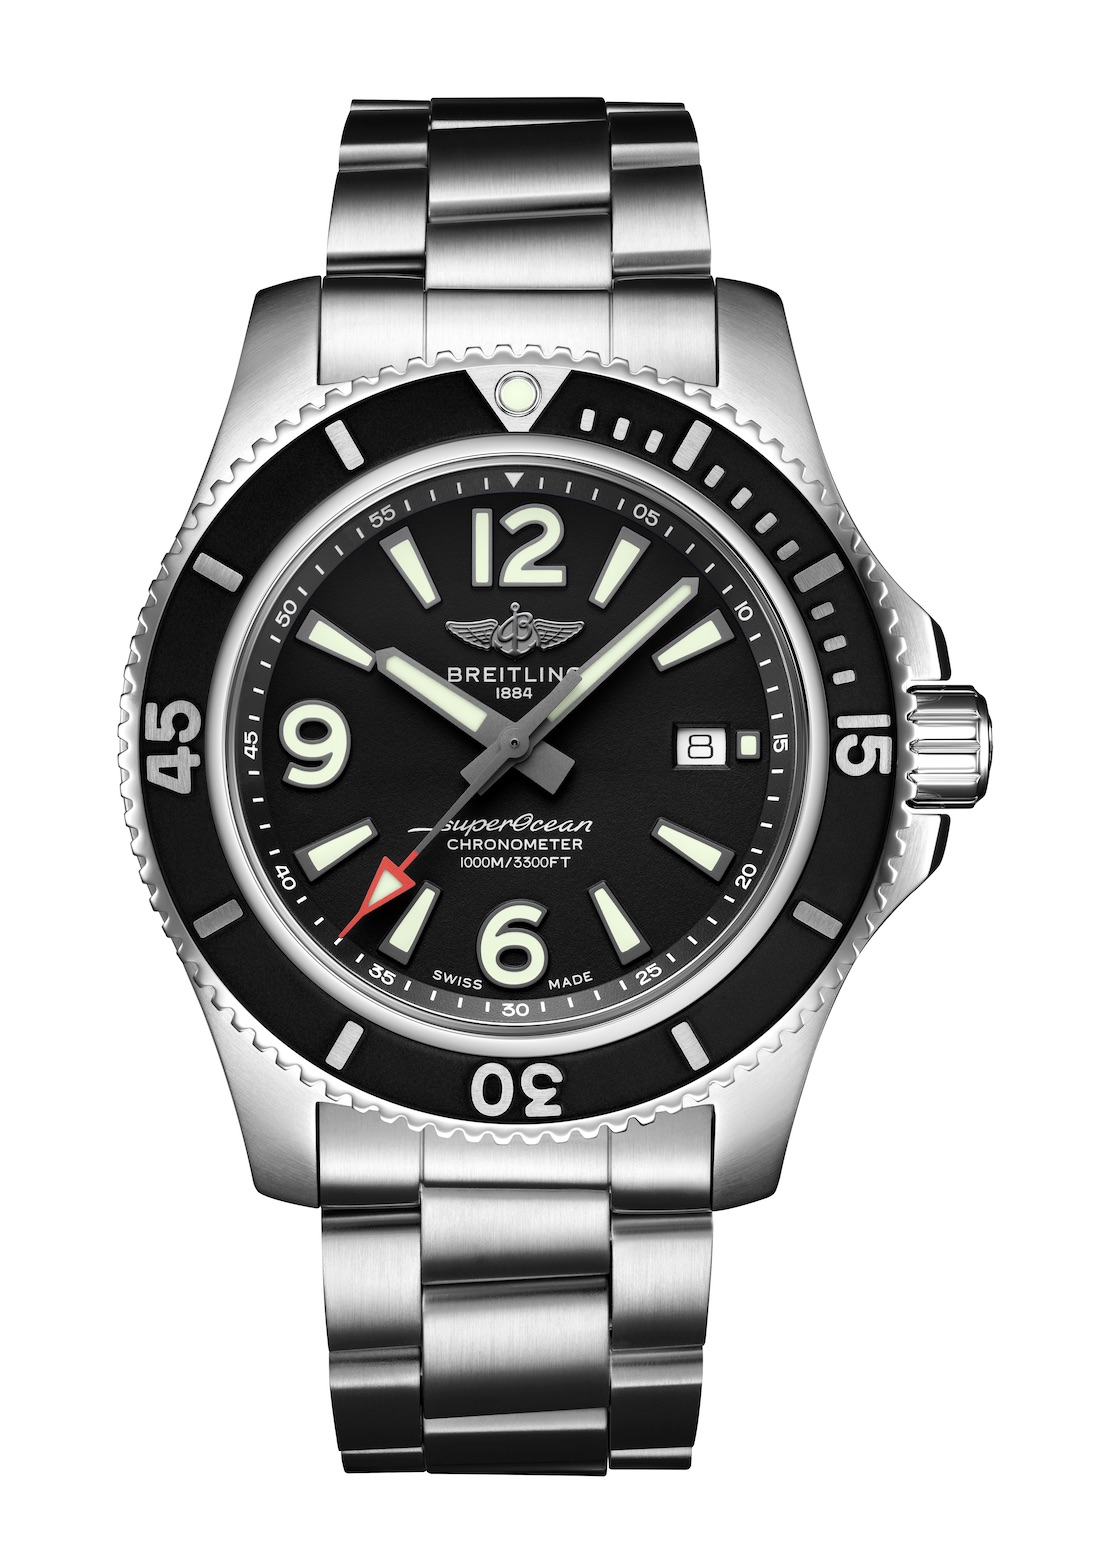 08_Superocean 44 with black dial and stainless-steel bracelet_22861_19-03-19.jpeg